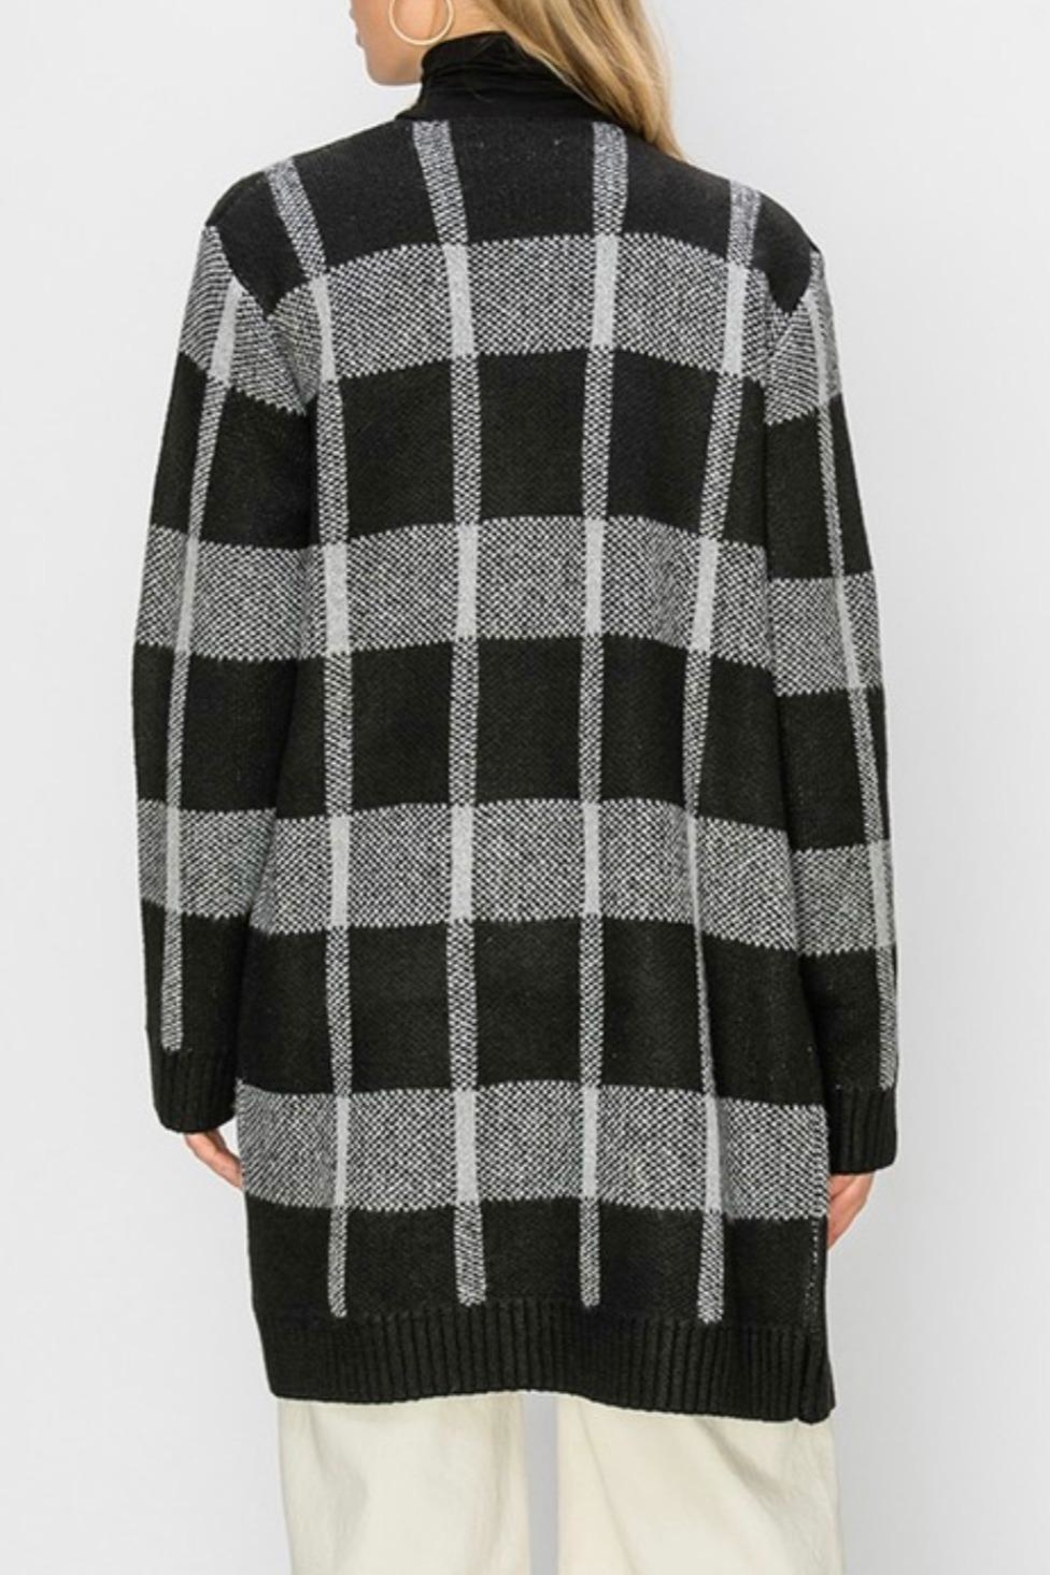 HYFVE Plaid Maxi Open-Sweater - Side Cropped Image